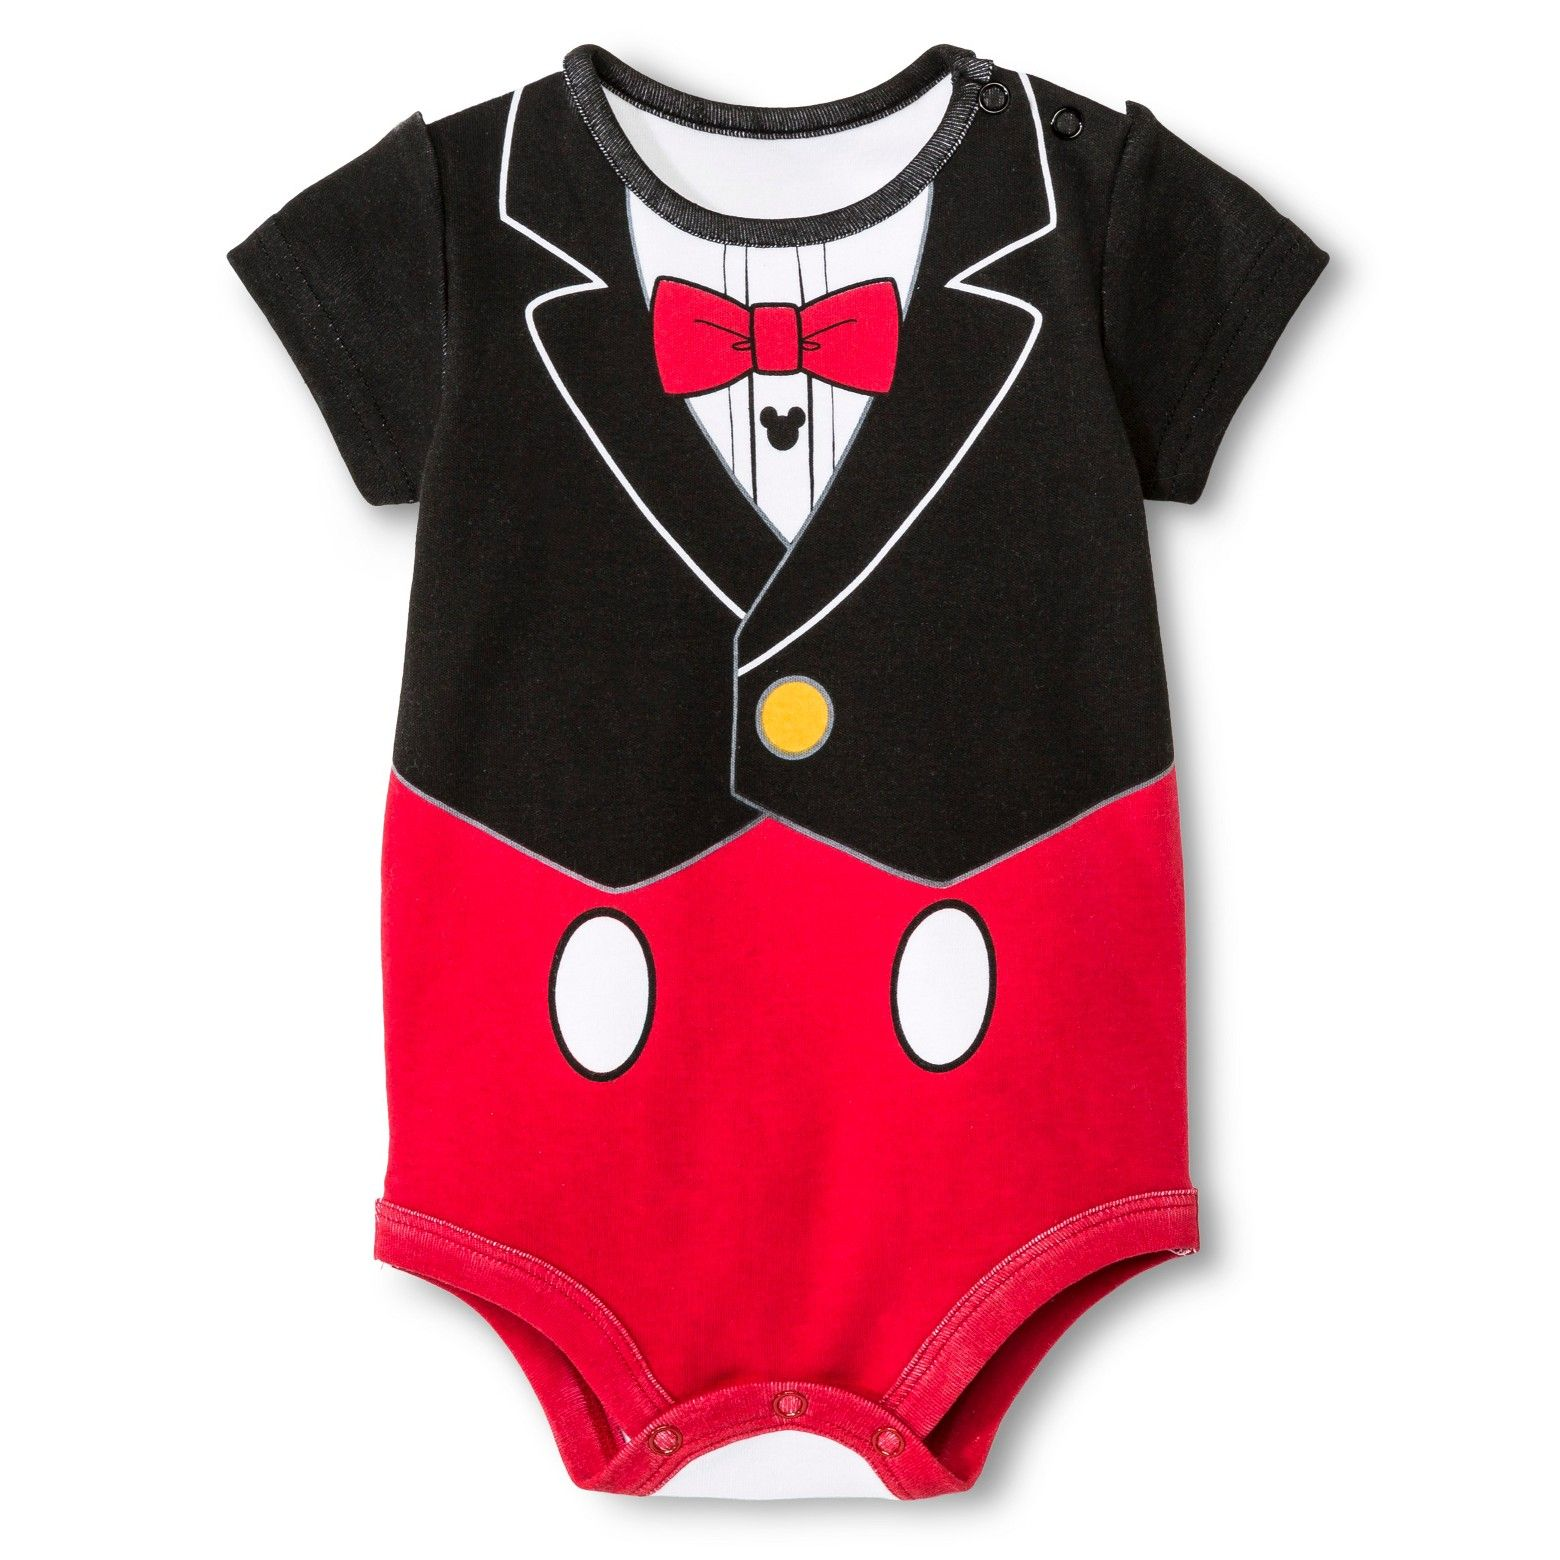 This Disney Baby Boys' Mickey Mouse Bodysuit in Red is